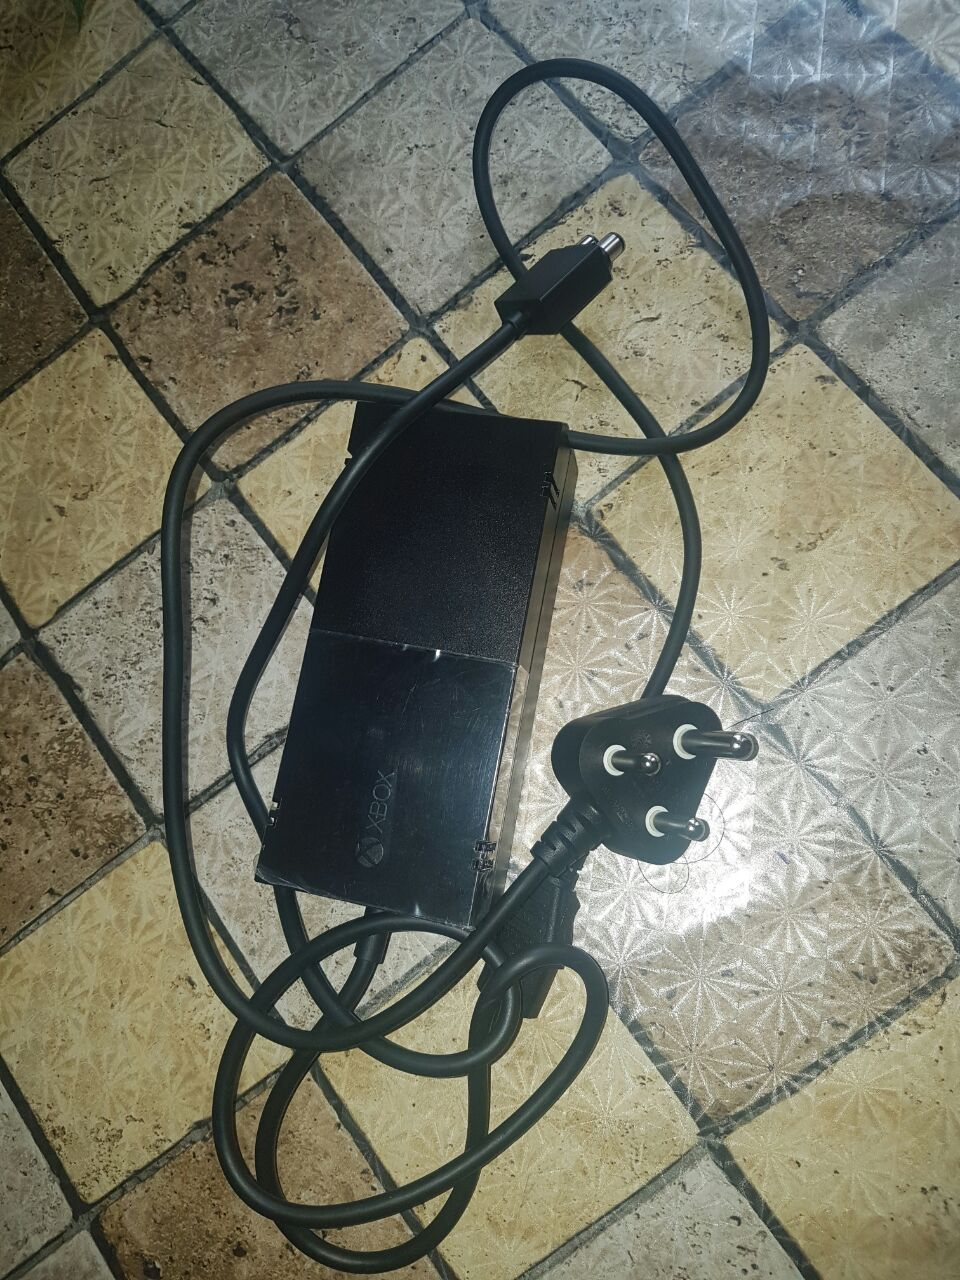 Xbox one power supply original R550 Contact 0744957666 price is R550 each we have stock not negotiable im situated in mayfair Johannesburg im available anytime once item is sold out will delete the advert thanks